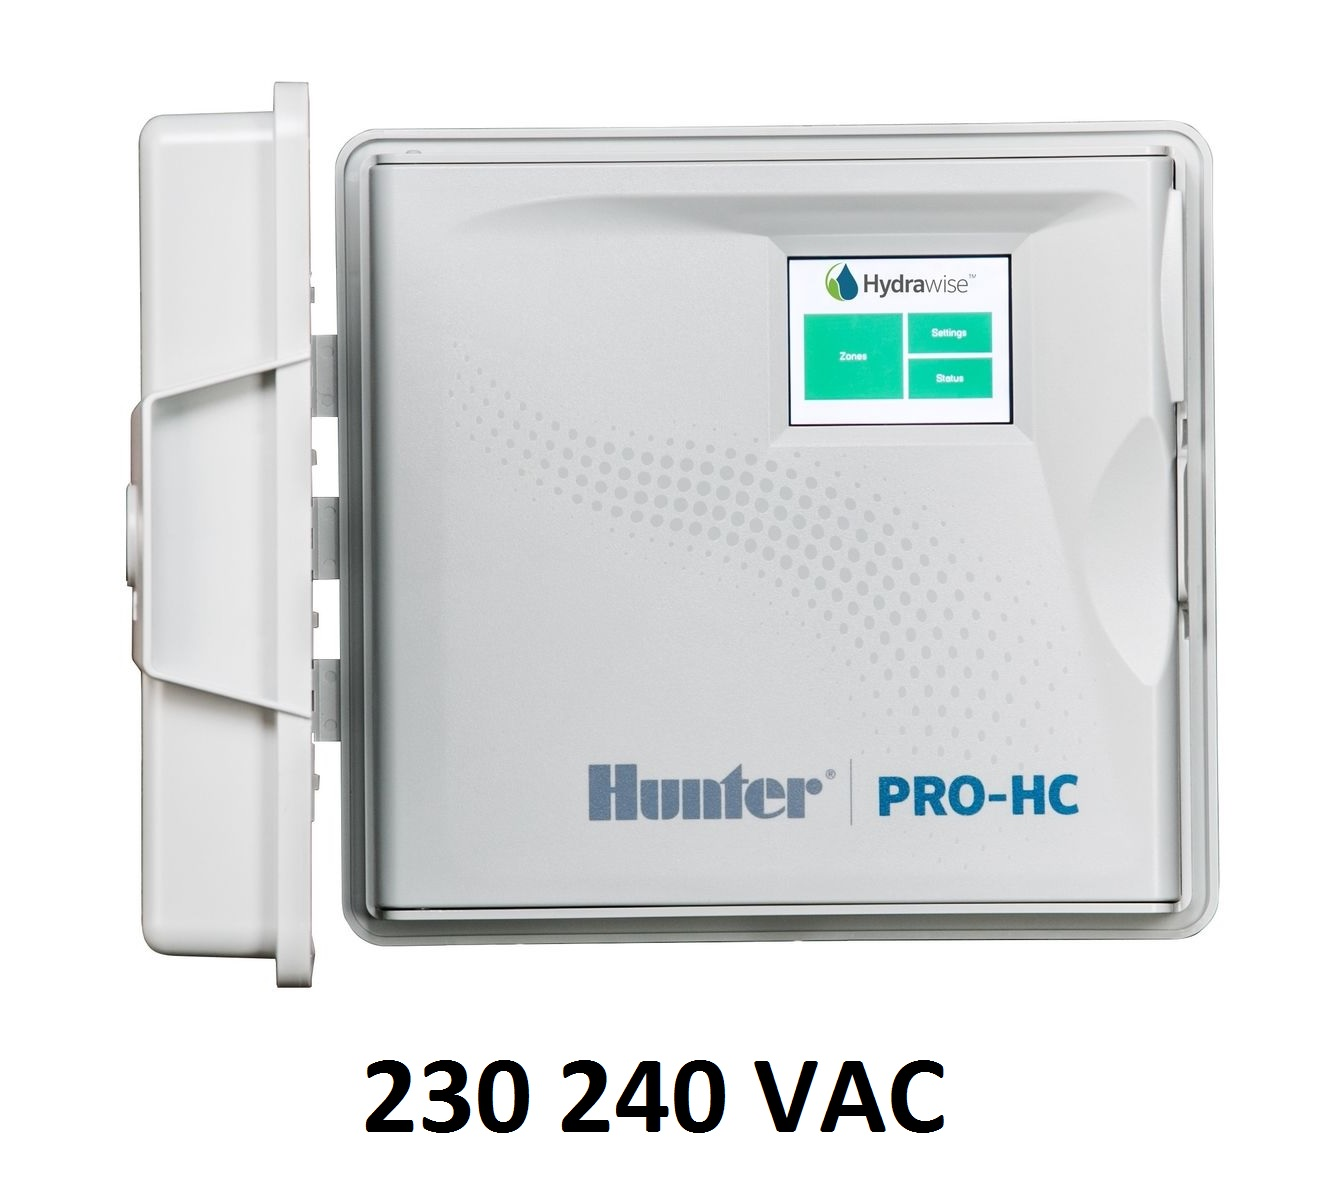 hight resolution of details about hunter 230v 240v hydrawise pro hc phc 600i e 6 zone wifi controller i phone app